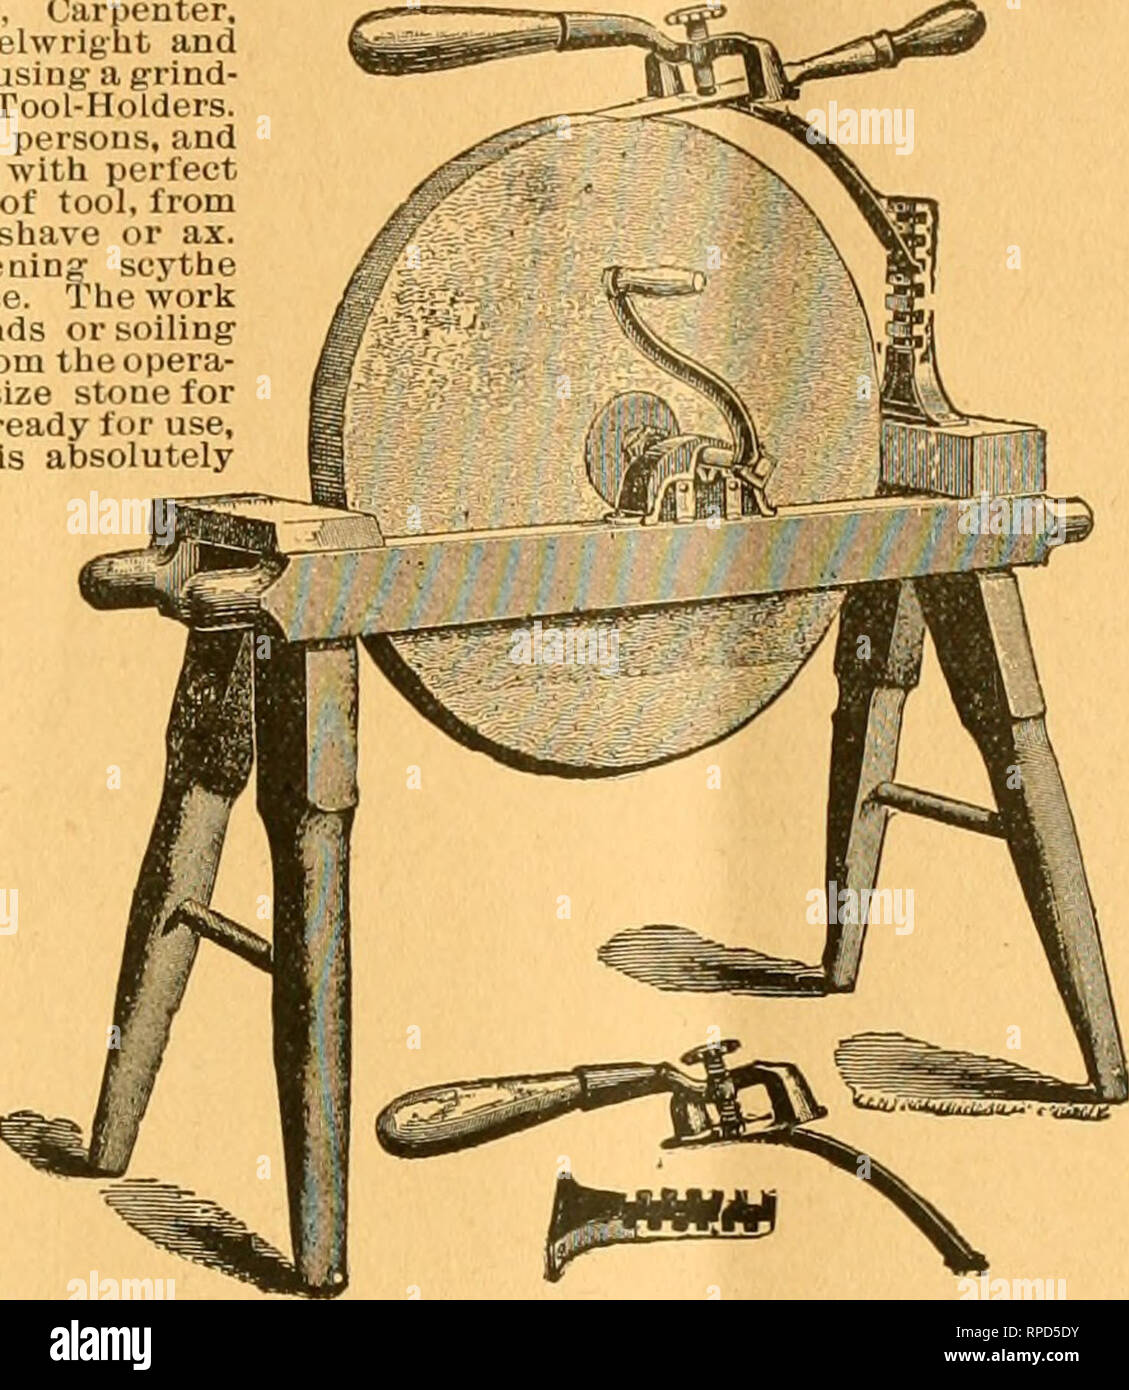 . American bee journal. Bee culture; Bees. 1896. THE AMERICAN BEE JOURNAL. 299 A HANDY TOOL-HOLDER! Sent by Expre§s, for $1.50; or with the Bee JournaS one year—both for $2.00. Every Manufacturer, Miller, Carpenter, Cabinet Maker, Machinist. Wheelwrigbt and Quarryman, Farmer, or any one using- a grind- stone, sliould have one of tlieso Tool-Holders. One boy can do the work of two persons, and grind much taster, easier and with perfect accuracy. Will hold any kind of tool, from the smallest chisel to a draw shave or ax. Extra attachment lor sharpening scythe blades included iu the above price.  - Stock Image